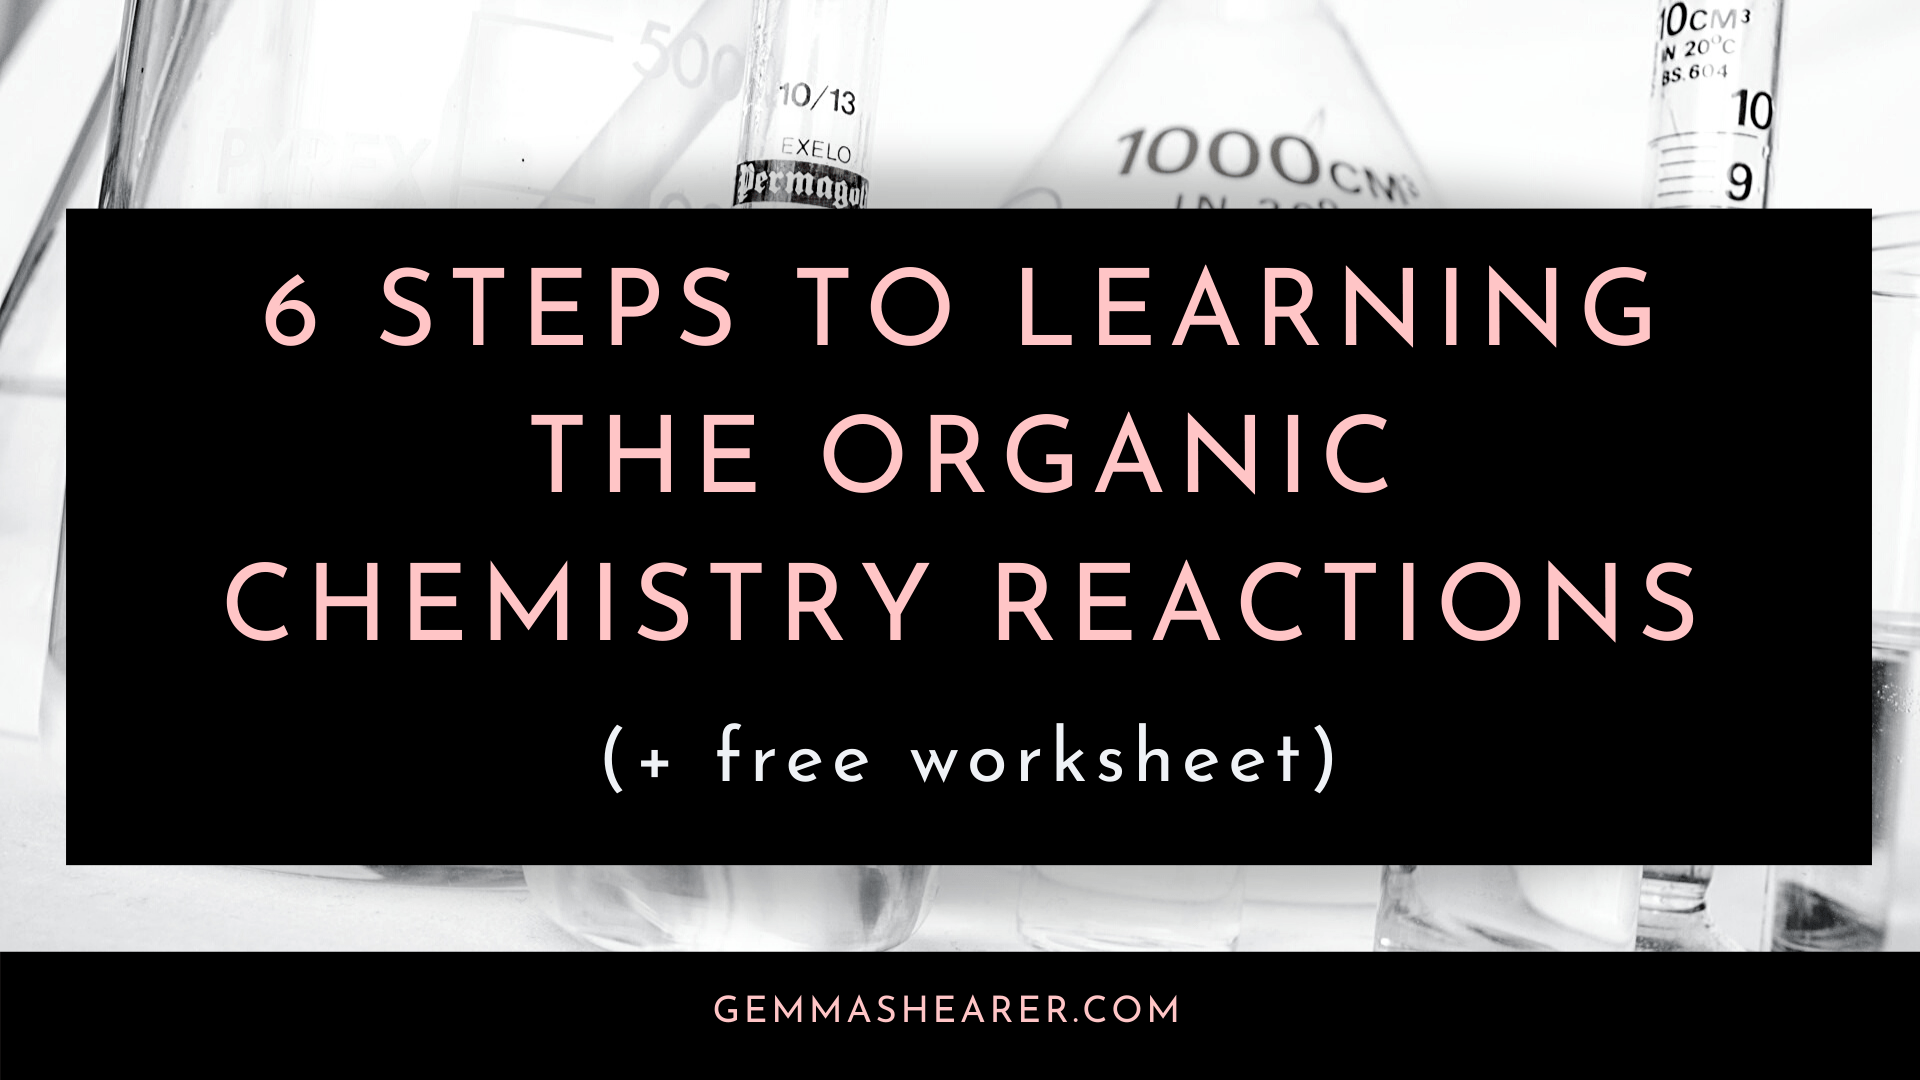 A-level Chemistry organic reactions